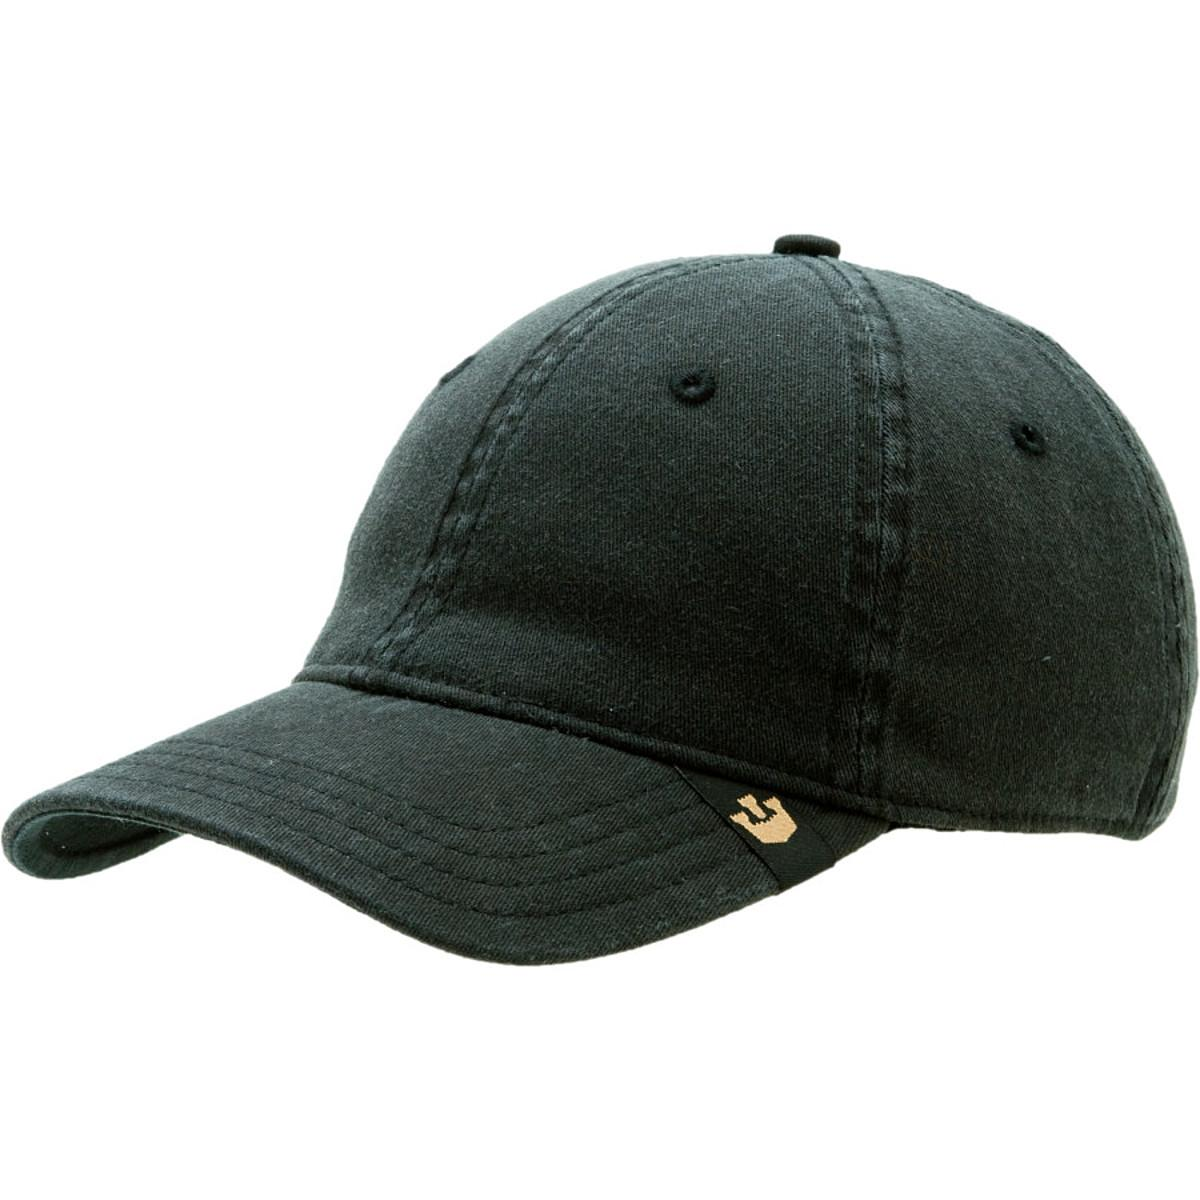 c68c095c798c7c Lyst - Goorin Bros Slayer Baseball Cap in Black for Men